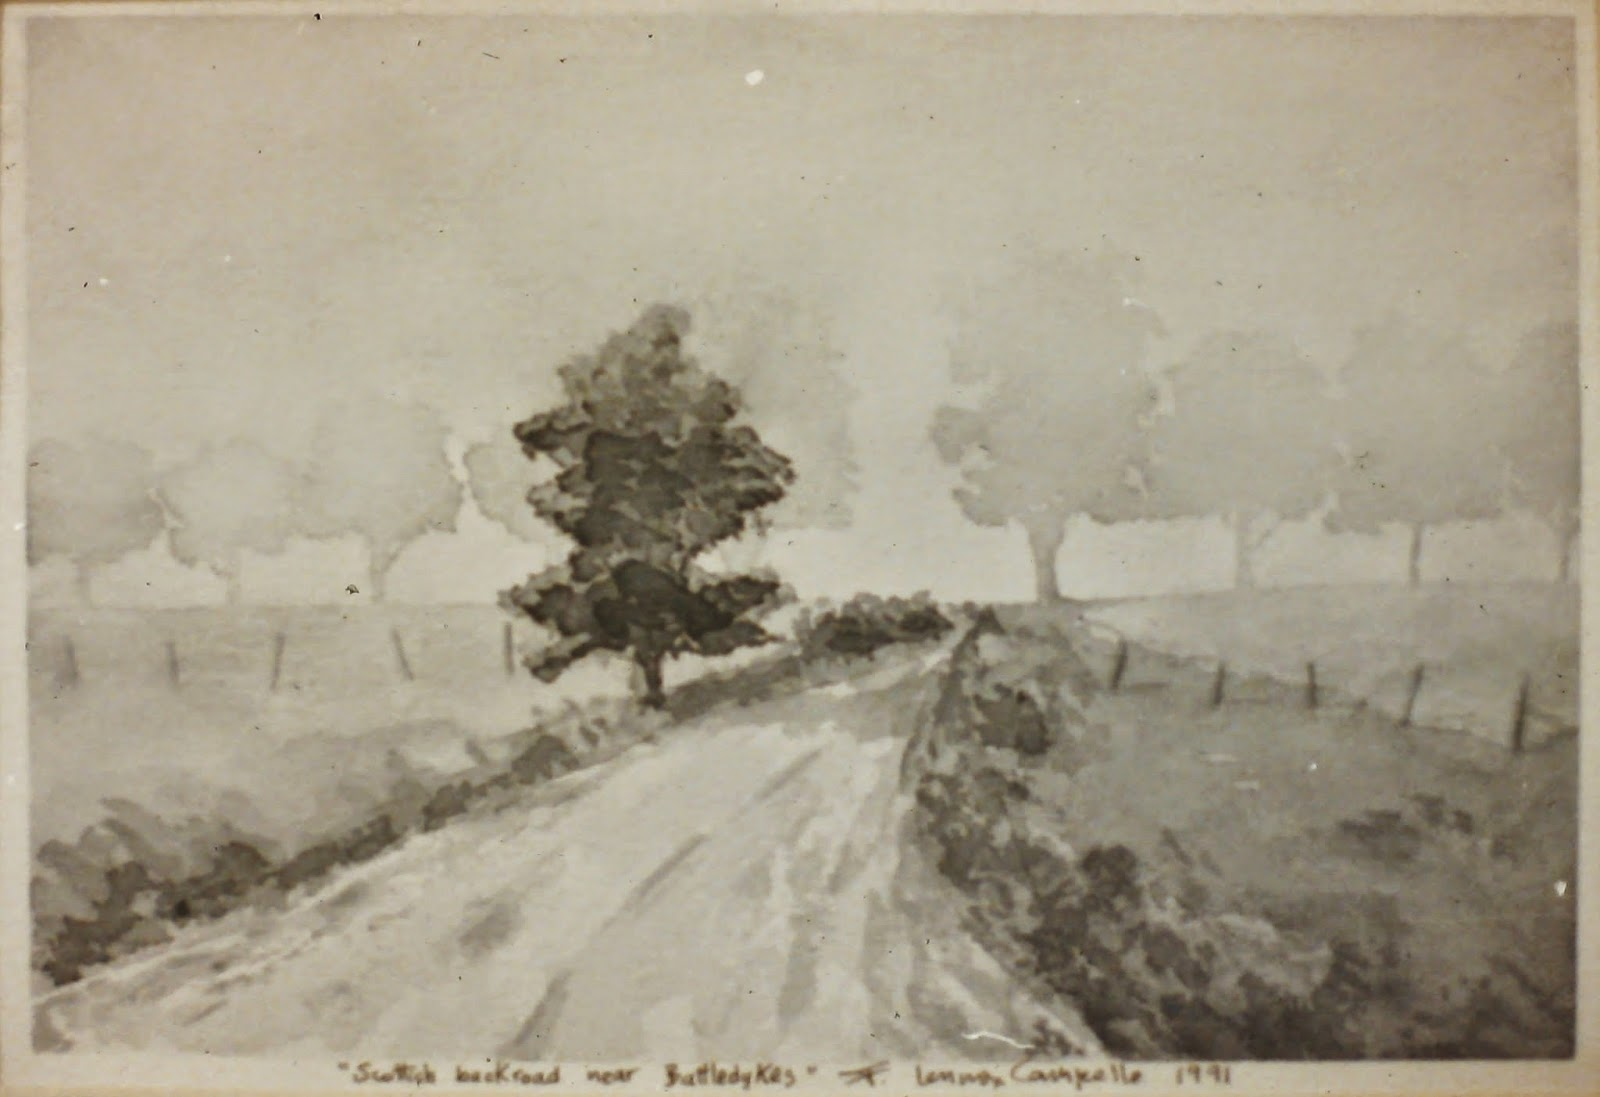 Back road, near Battledykes, Angus, Scotland  8x10 inches. Watercolor on paper, c. 1991.  In a private collection in Aberdeen, Scotland